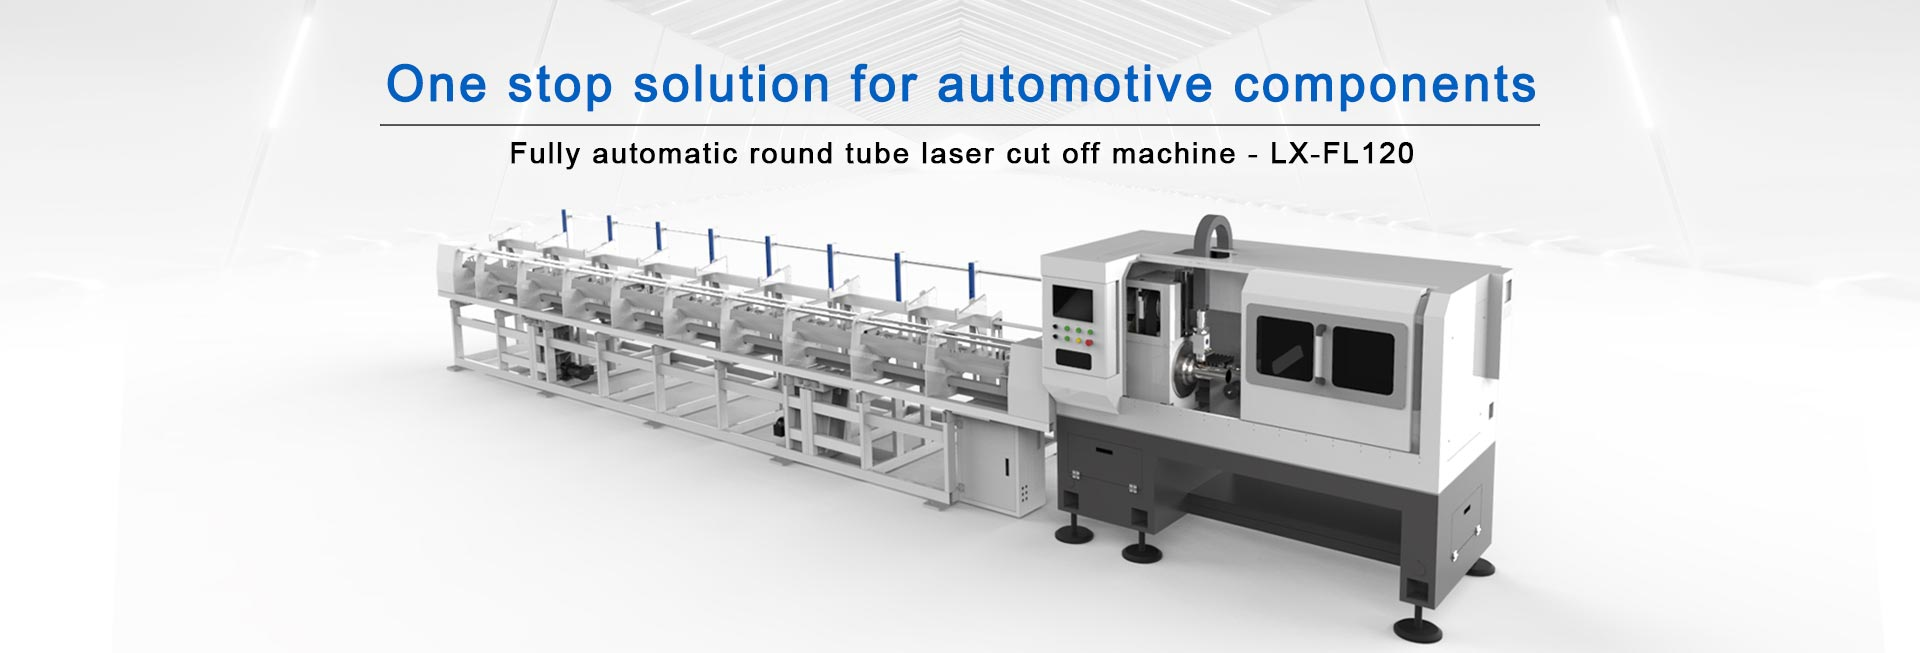 Round tube laser cutting machine for automotive parts manufacturing industry